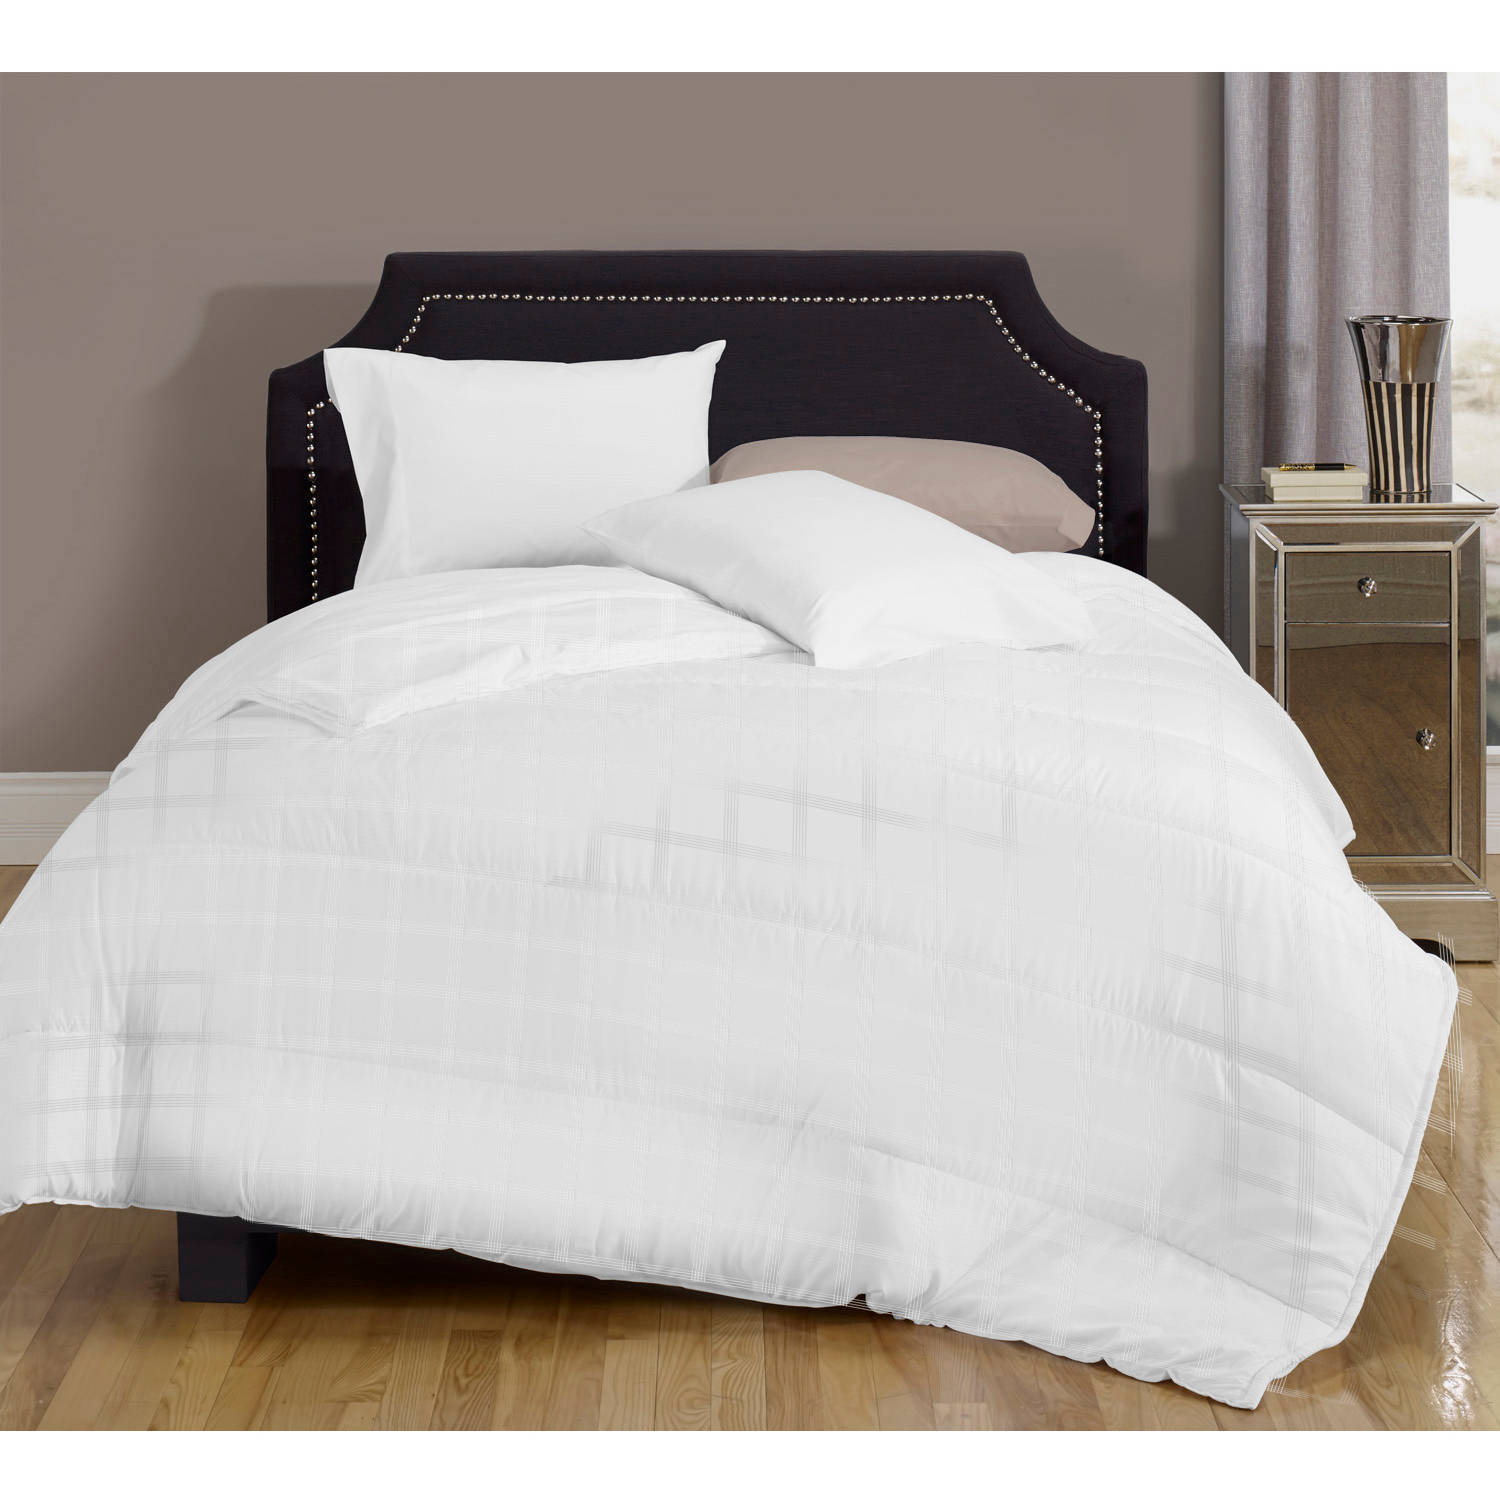 Canada's Best Down Alternative Bedding Comforter, Multiple Sizes